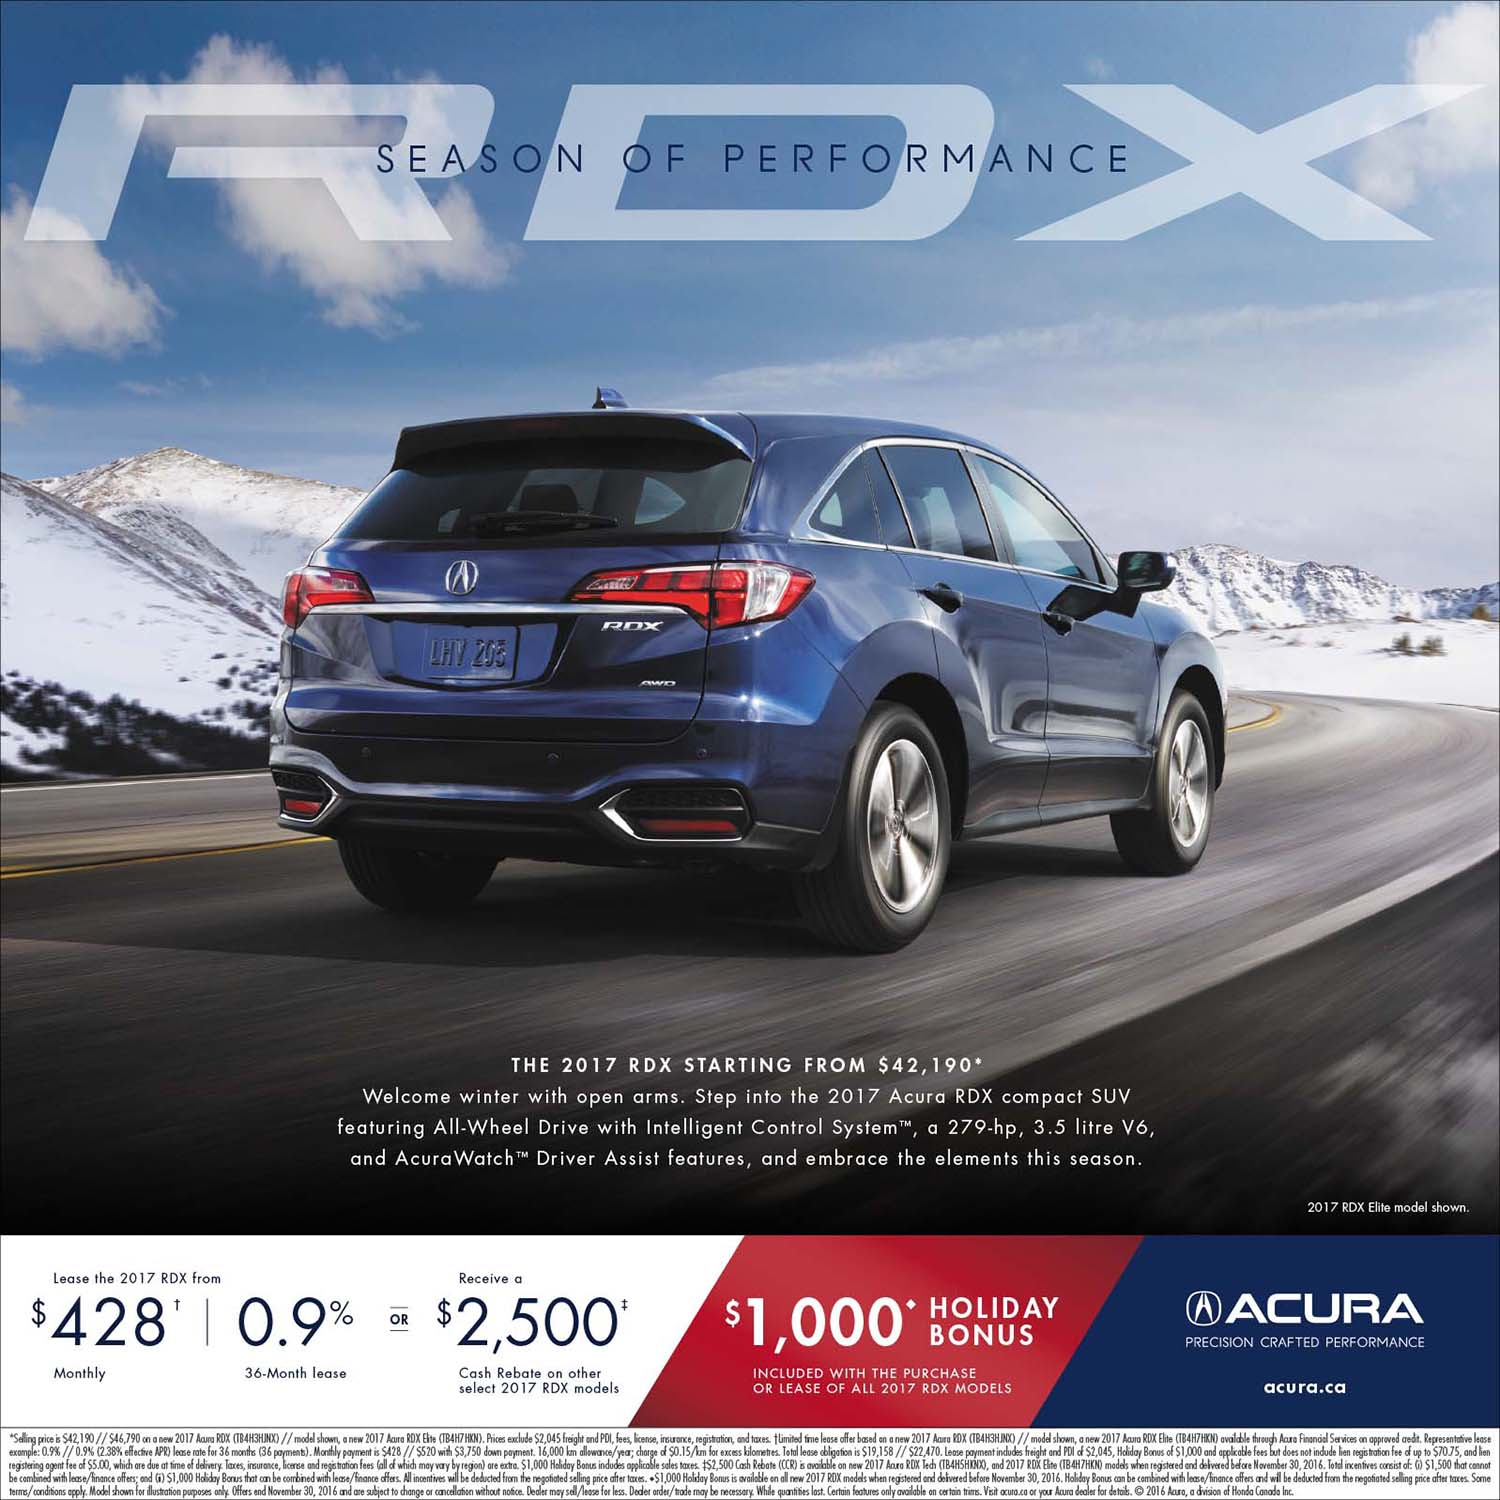 Acura Rdx Lease: ShopLocalNow : Canada : RDX SEASON OF PERFORMANCE